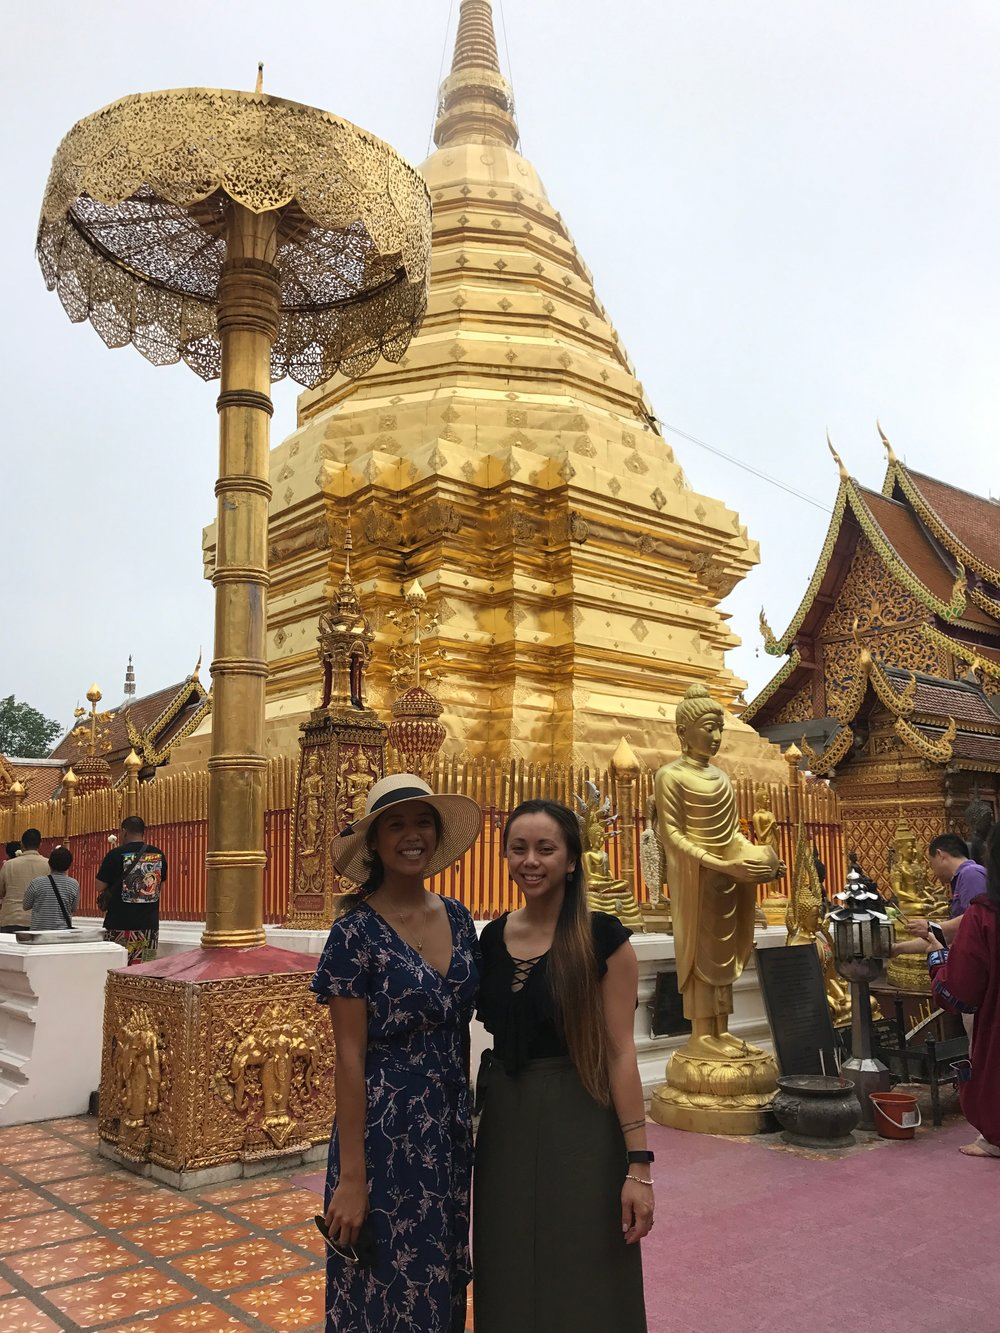 Besties take Thailand!